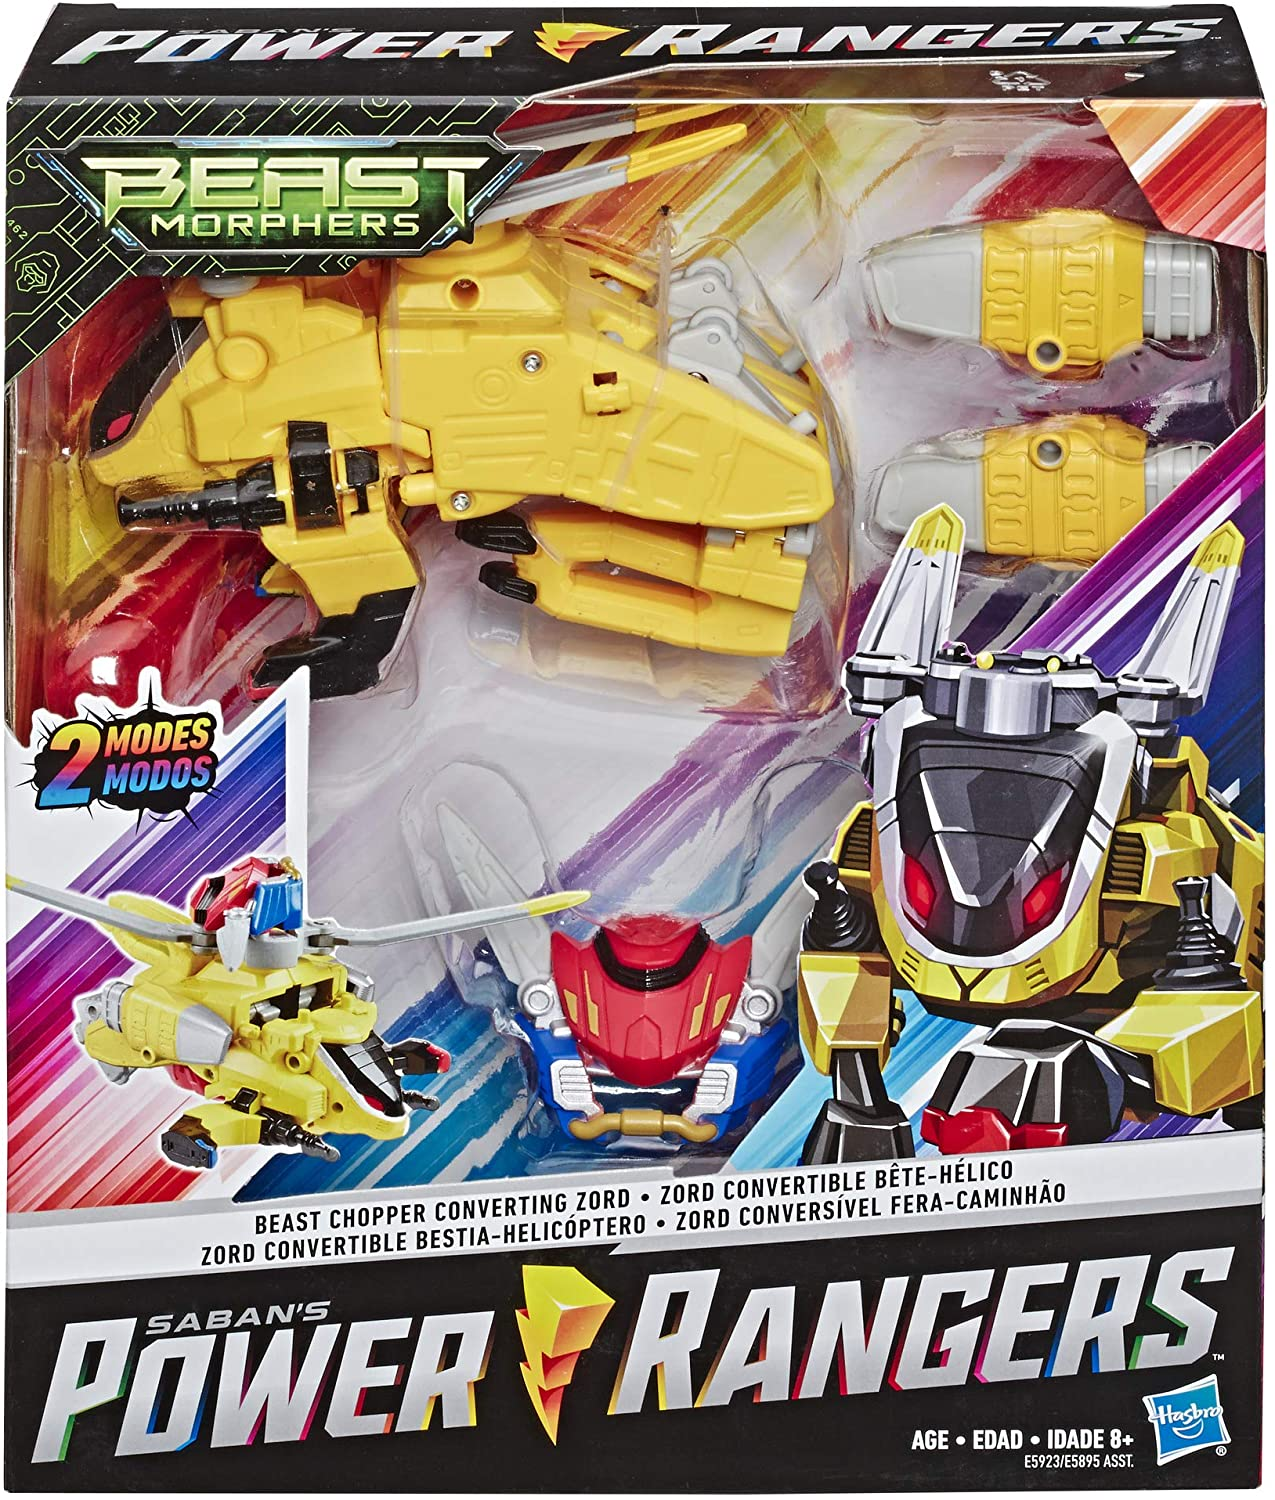 HASBRO Power Rangers Beast Morphers Figure Beast Chopper Converting Zord